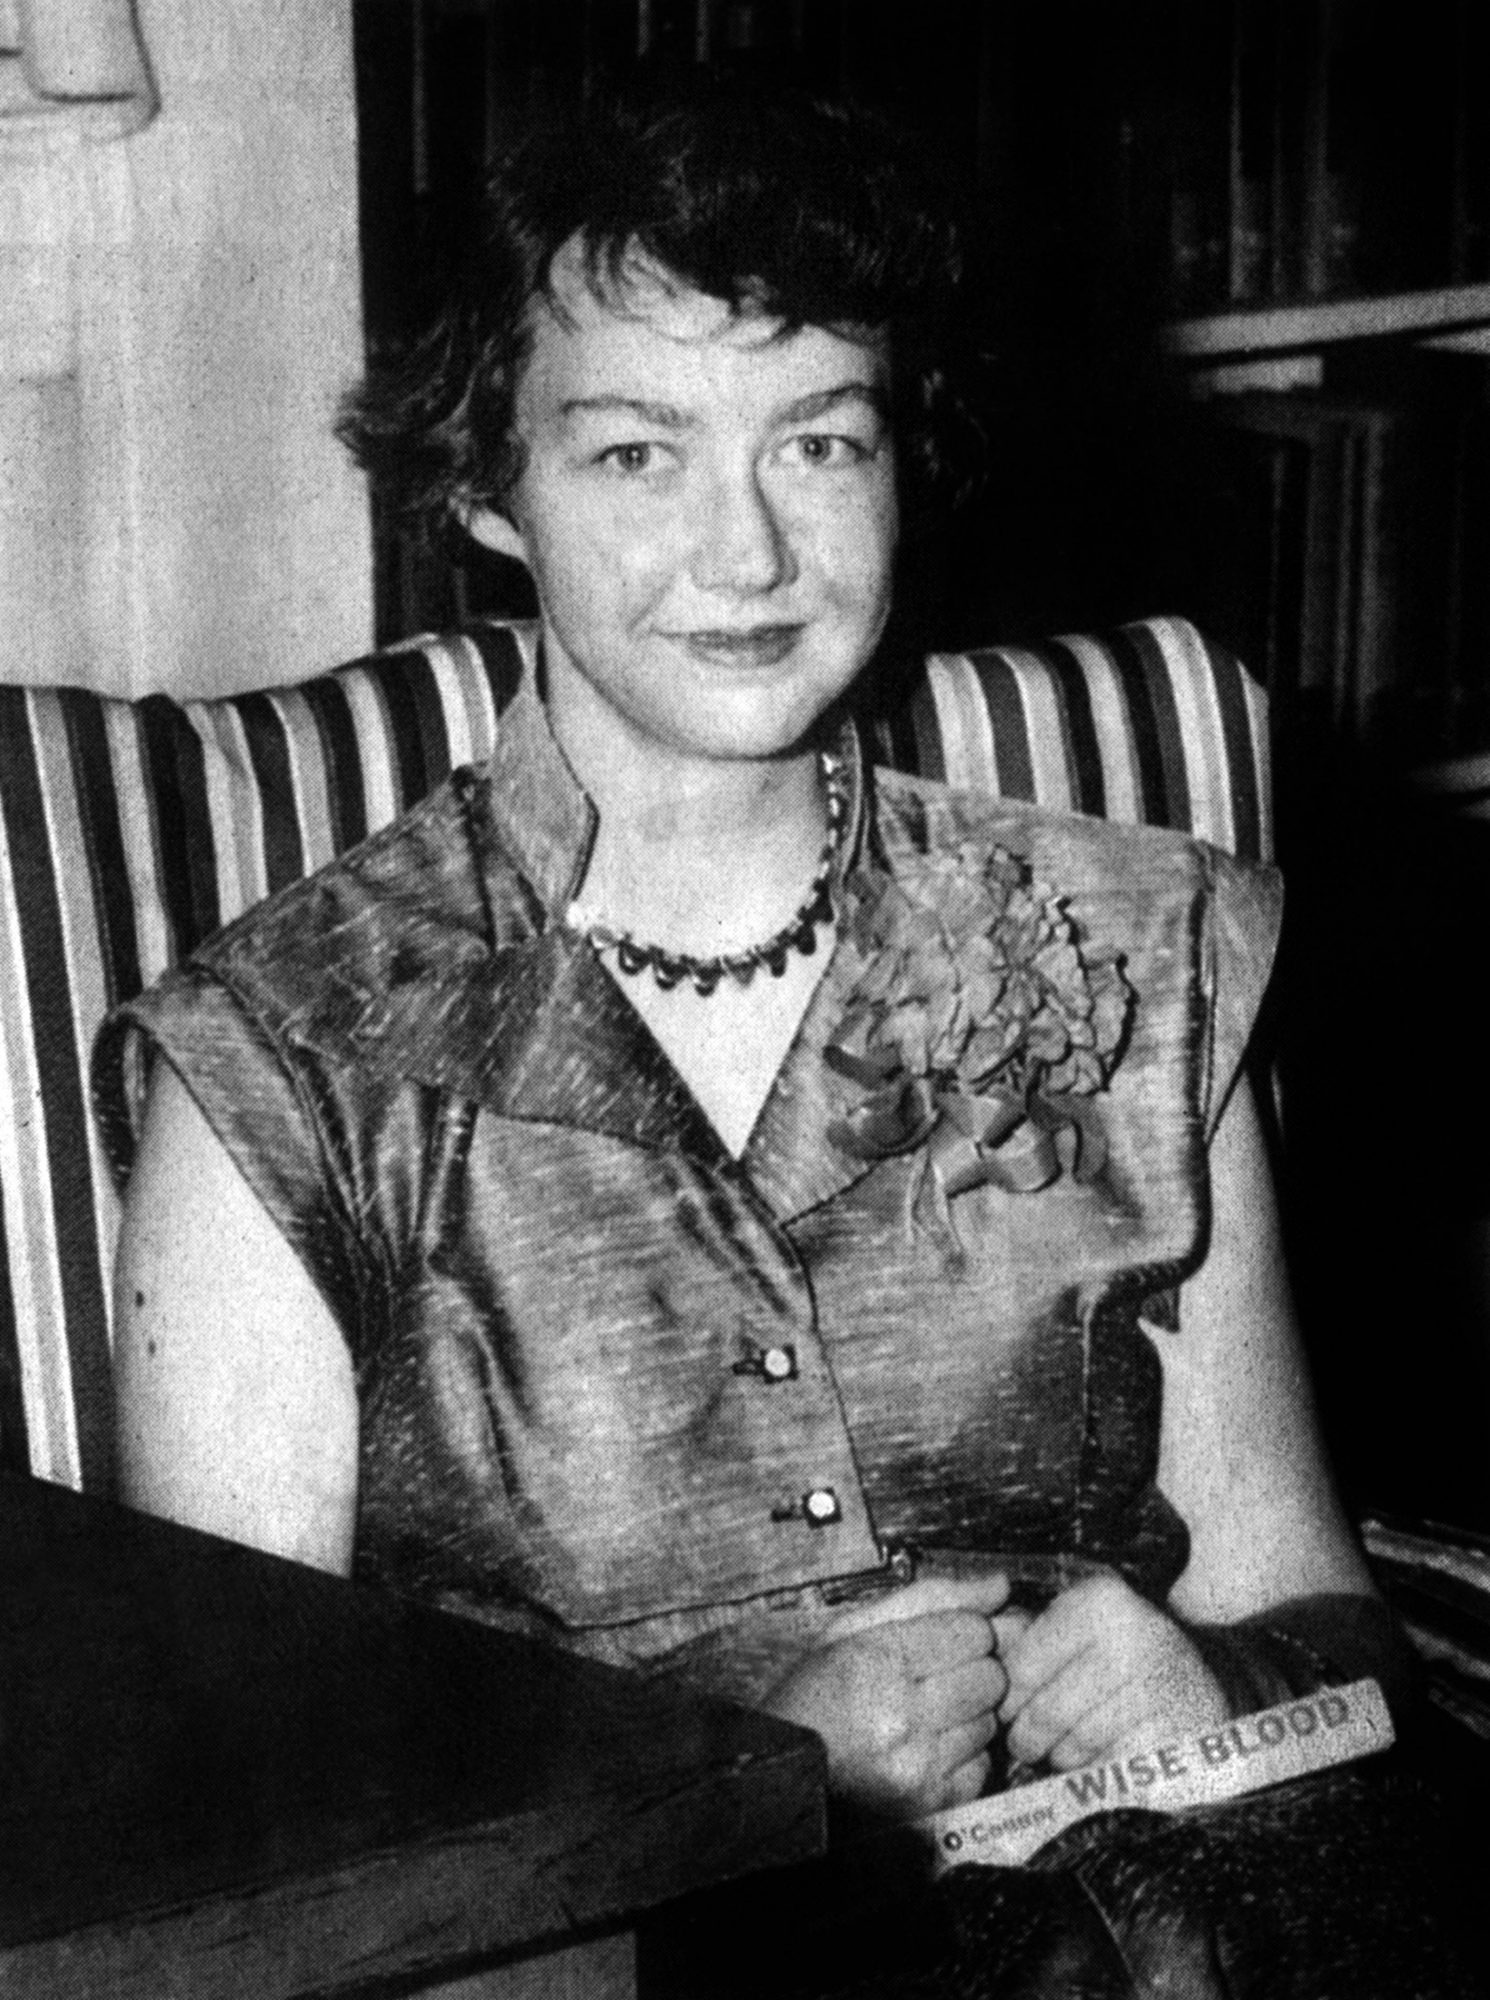 Our Favorite Flannery O'Connor Quotations